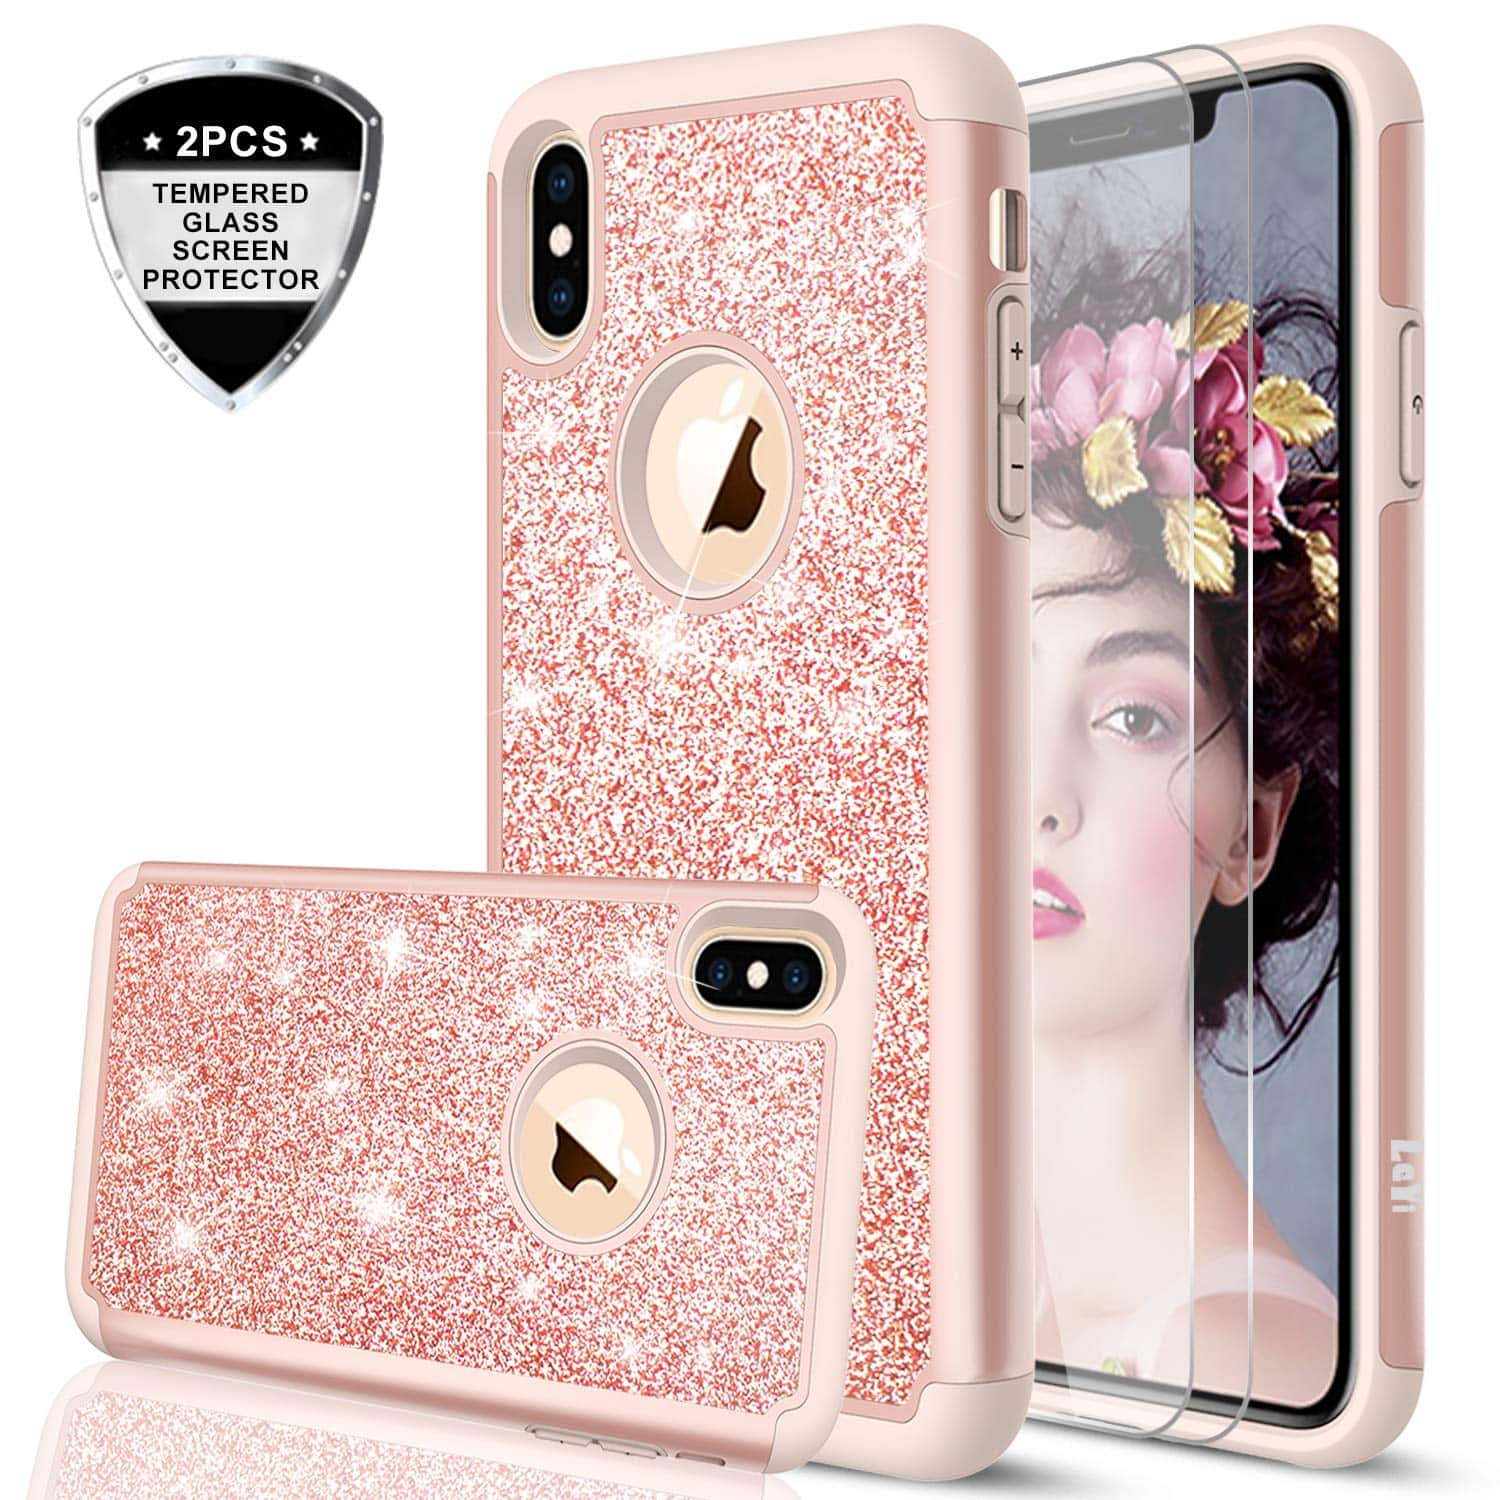 Glitter Case with Screen Protector for iPhone xr / 5S  samsung Galaxy  Note 8 / s9 /s8 /Google pixel 3 - $2.99+Free Shipping